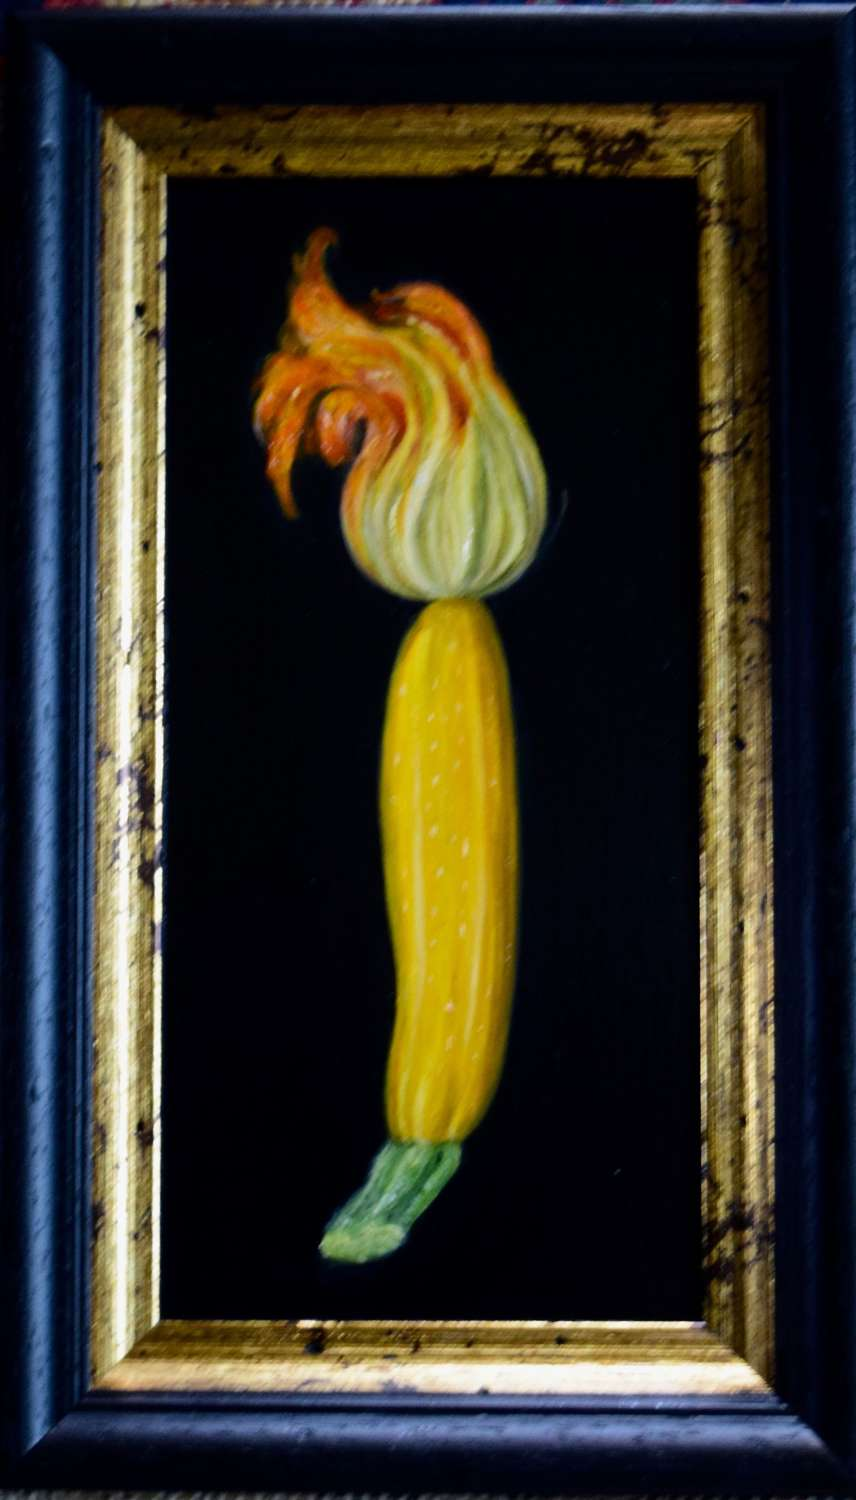 Yellow courgette and flower